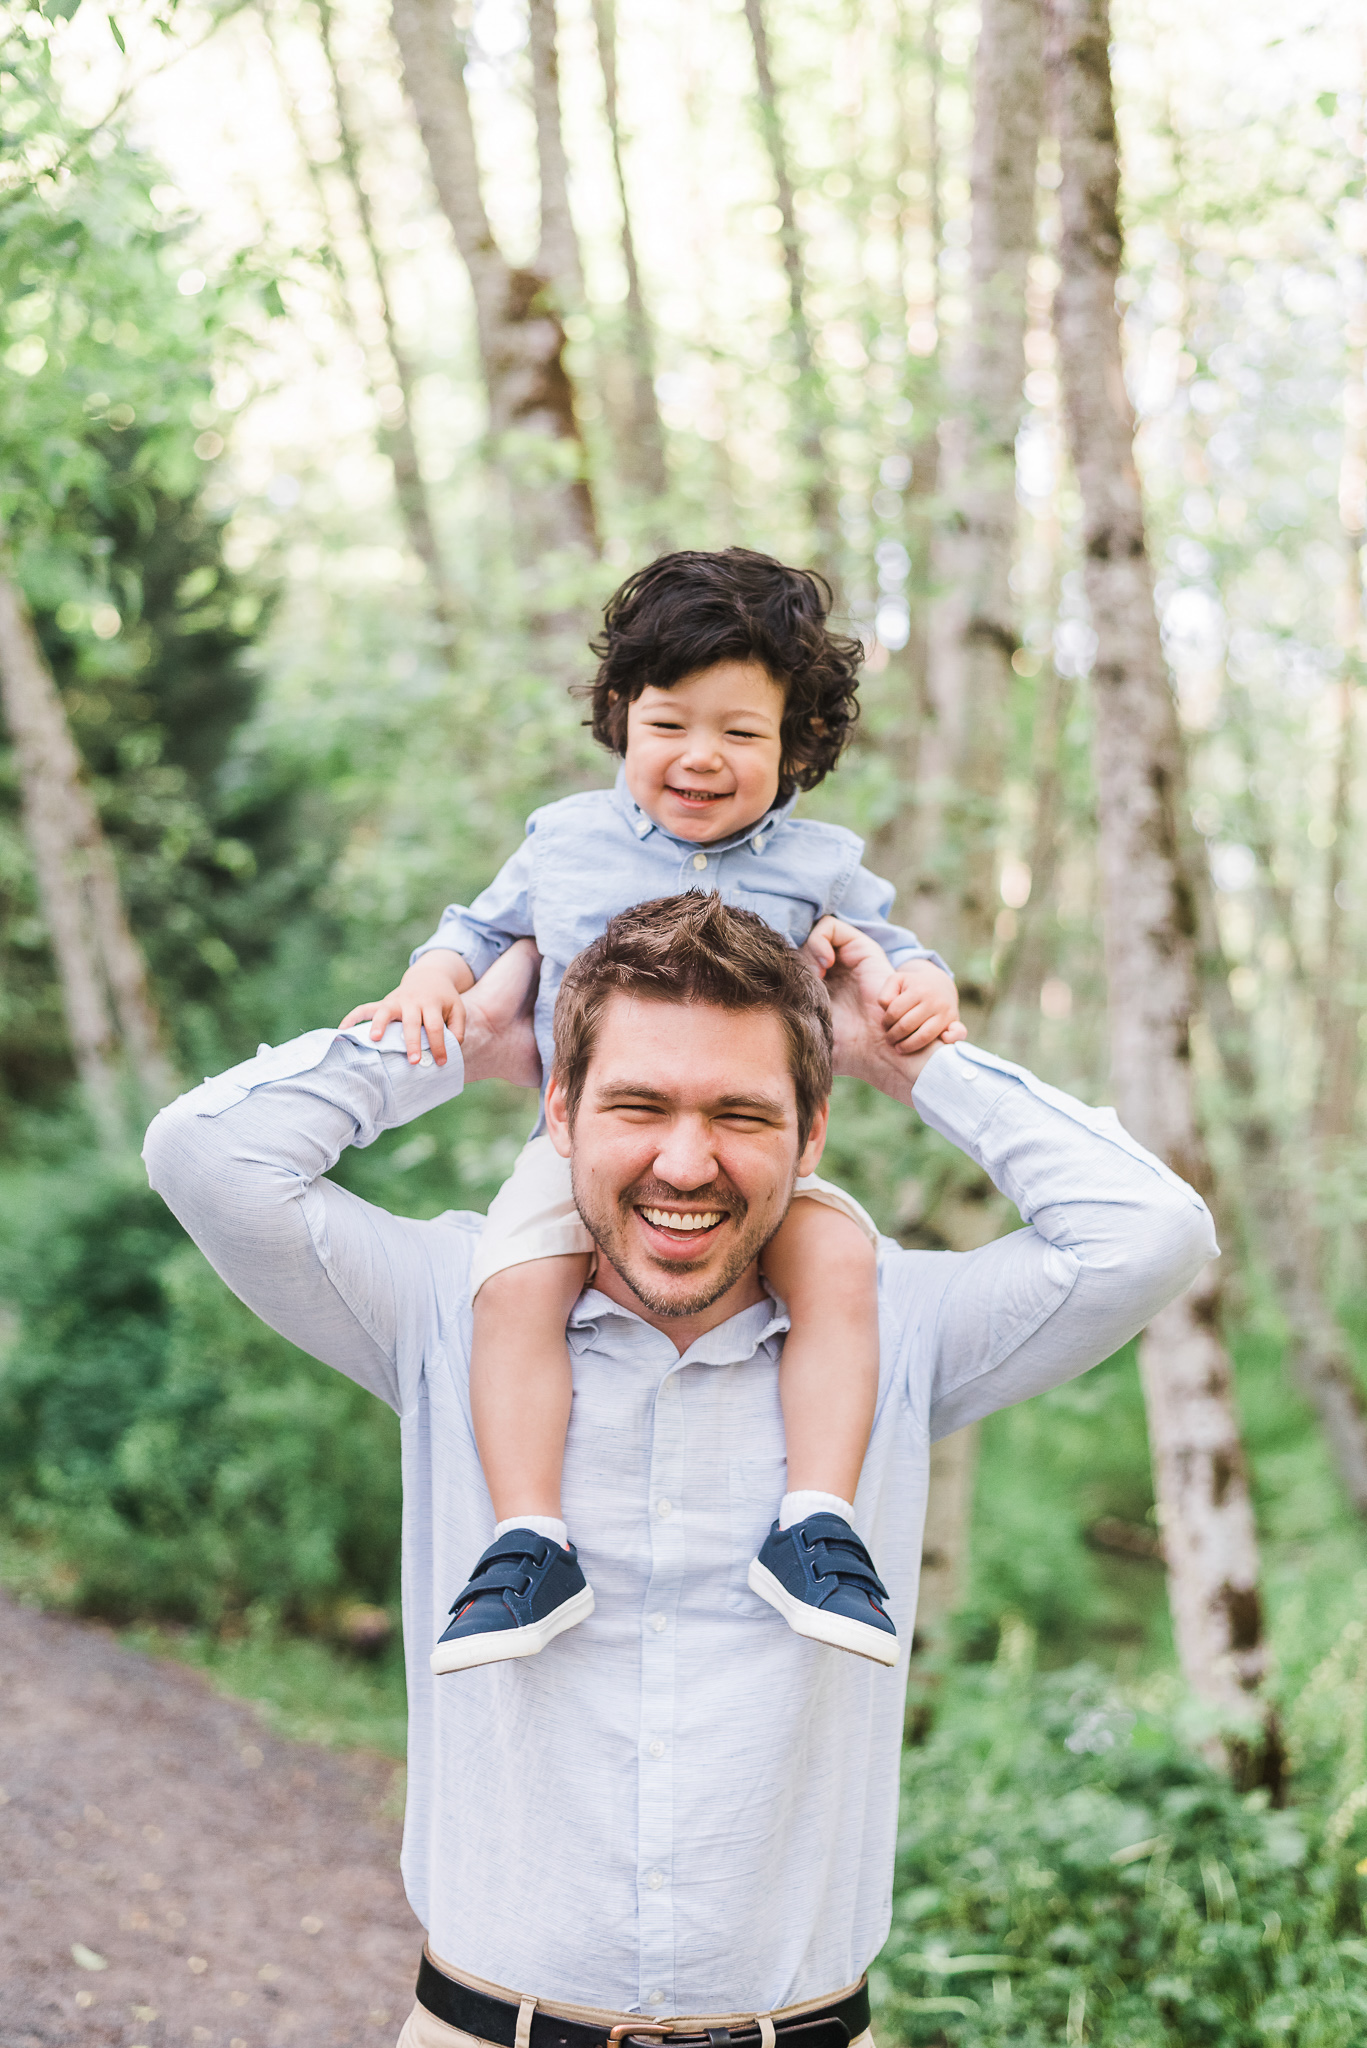 Family Photography in Portland oregon, two year old birthday photo ideas, birth announcement ideas, family photo inspiration